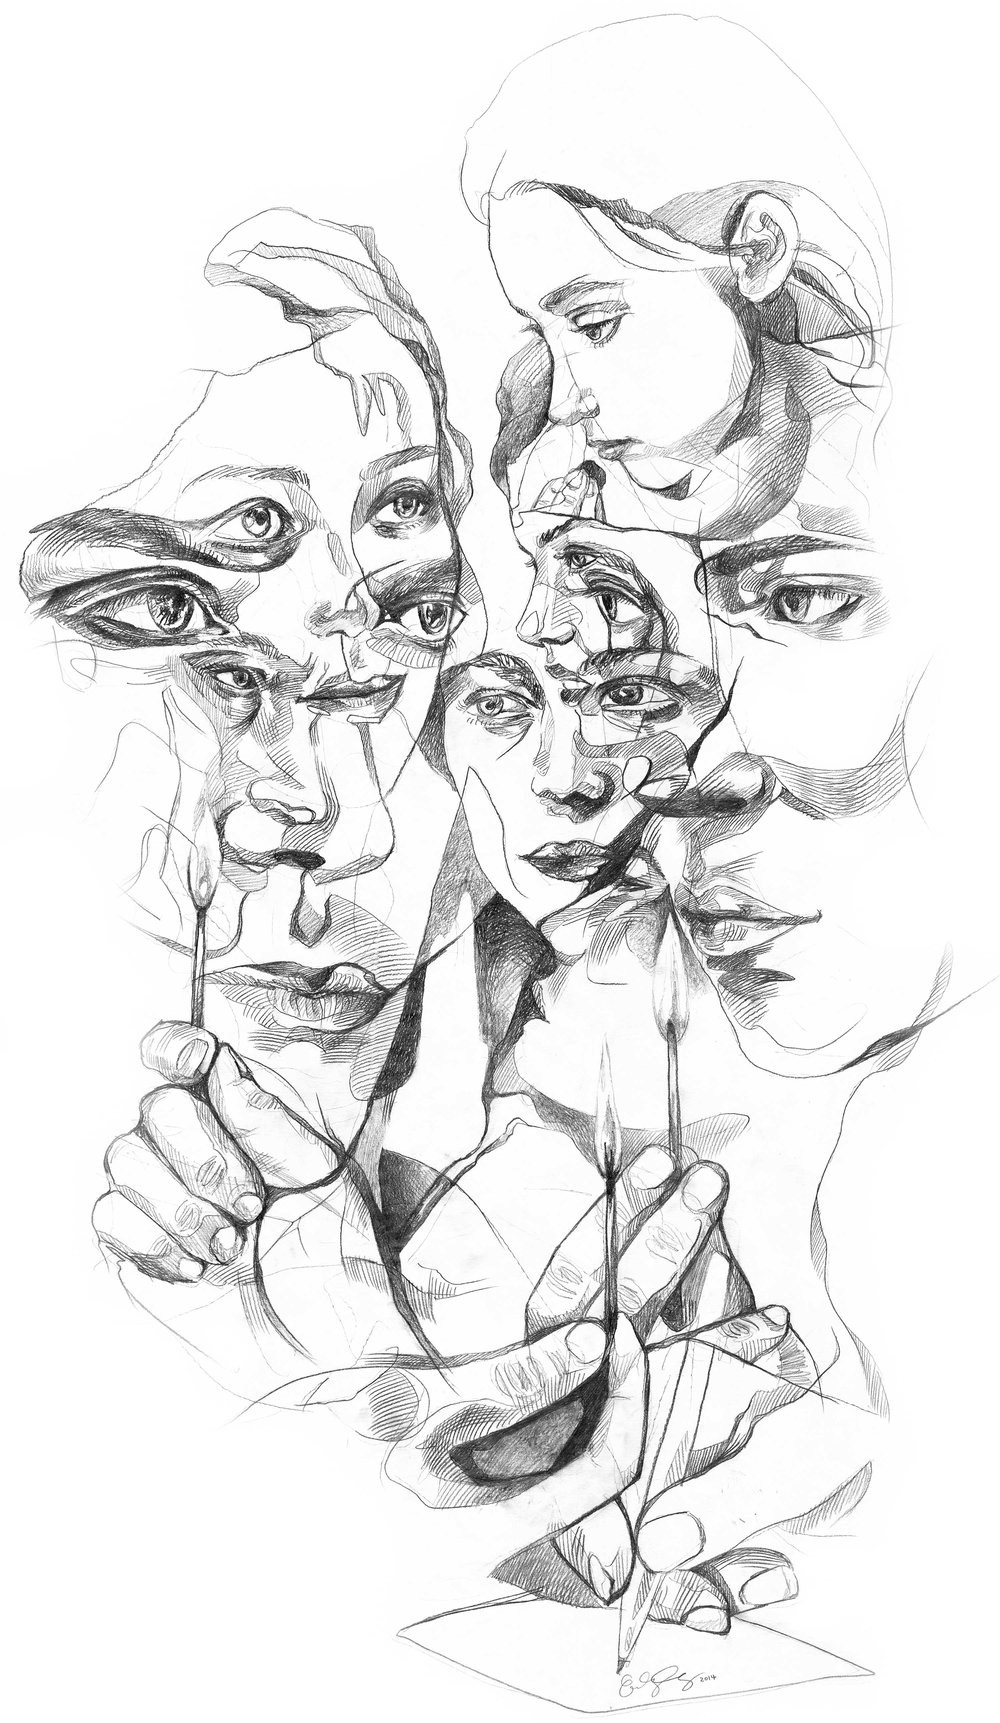 graphite-scanned-art-02-4-imageoptim.jpg